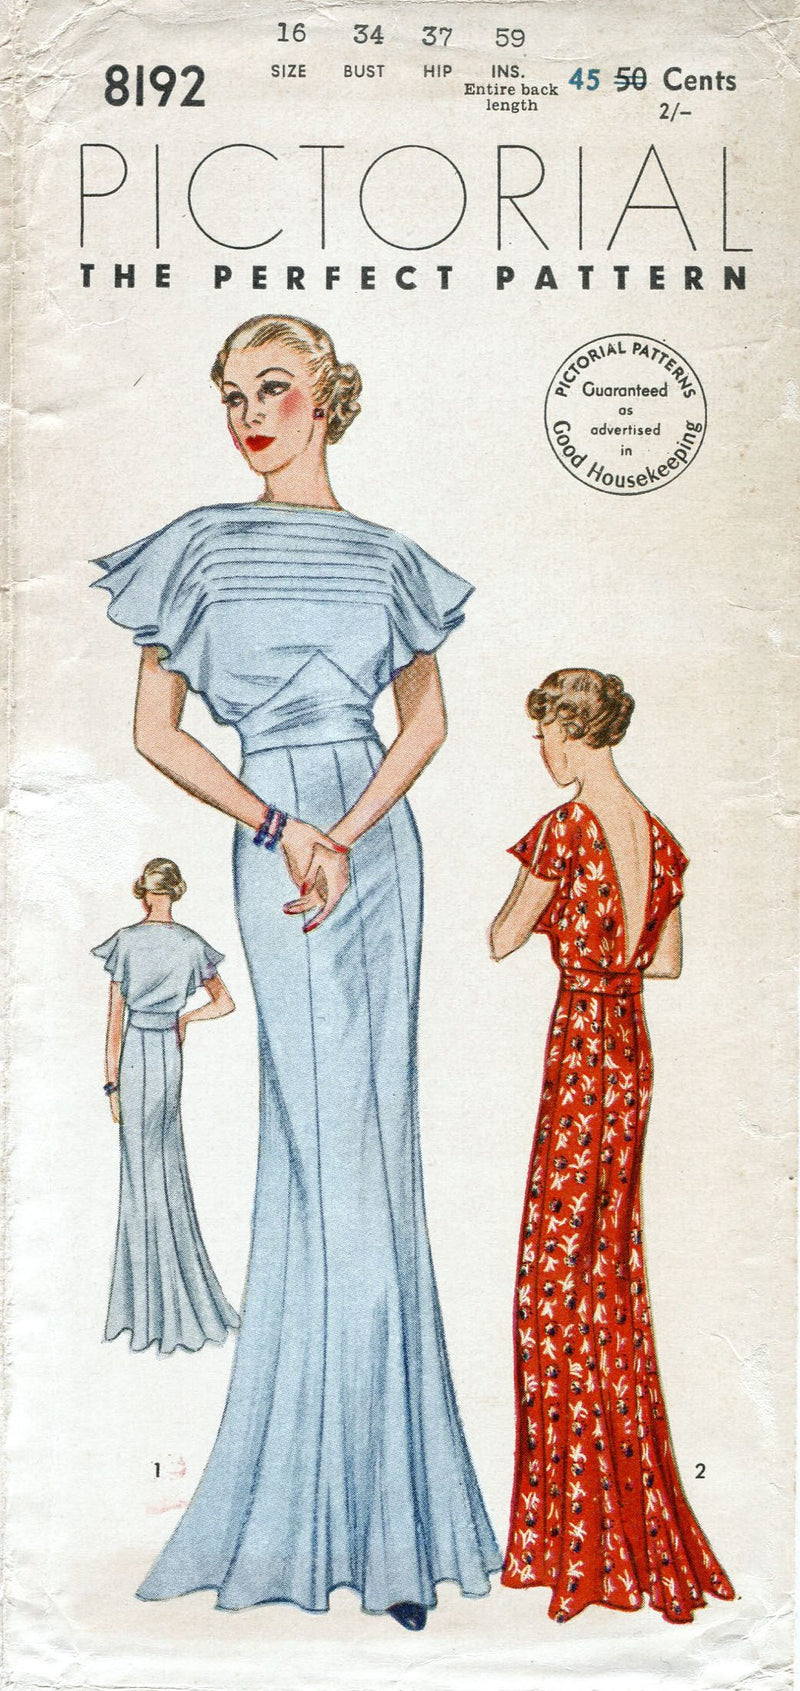 Pictorial Review 8192 1930s evening gown vintage sewing pattern